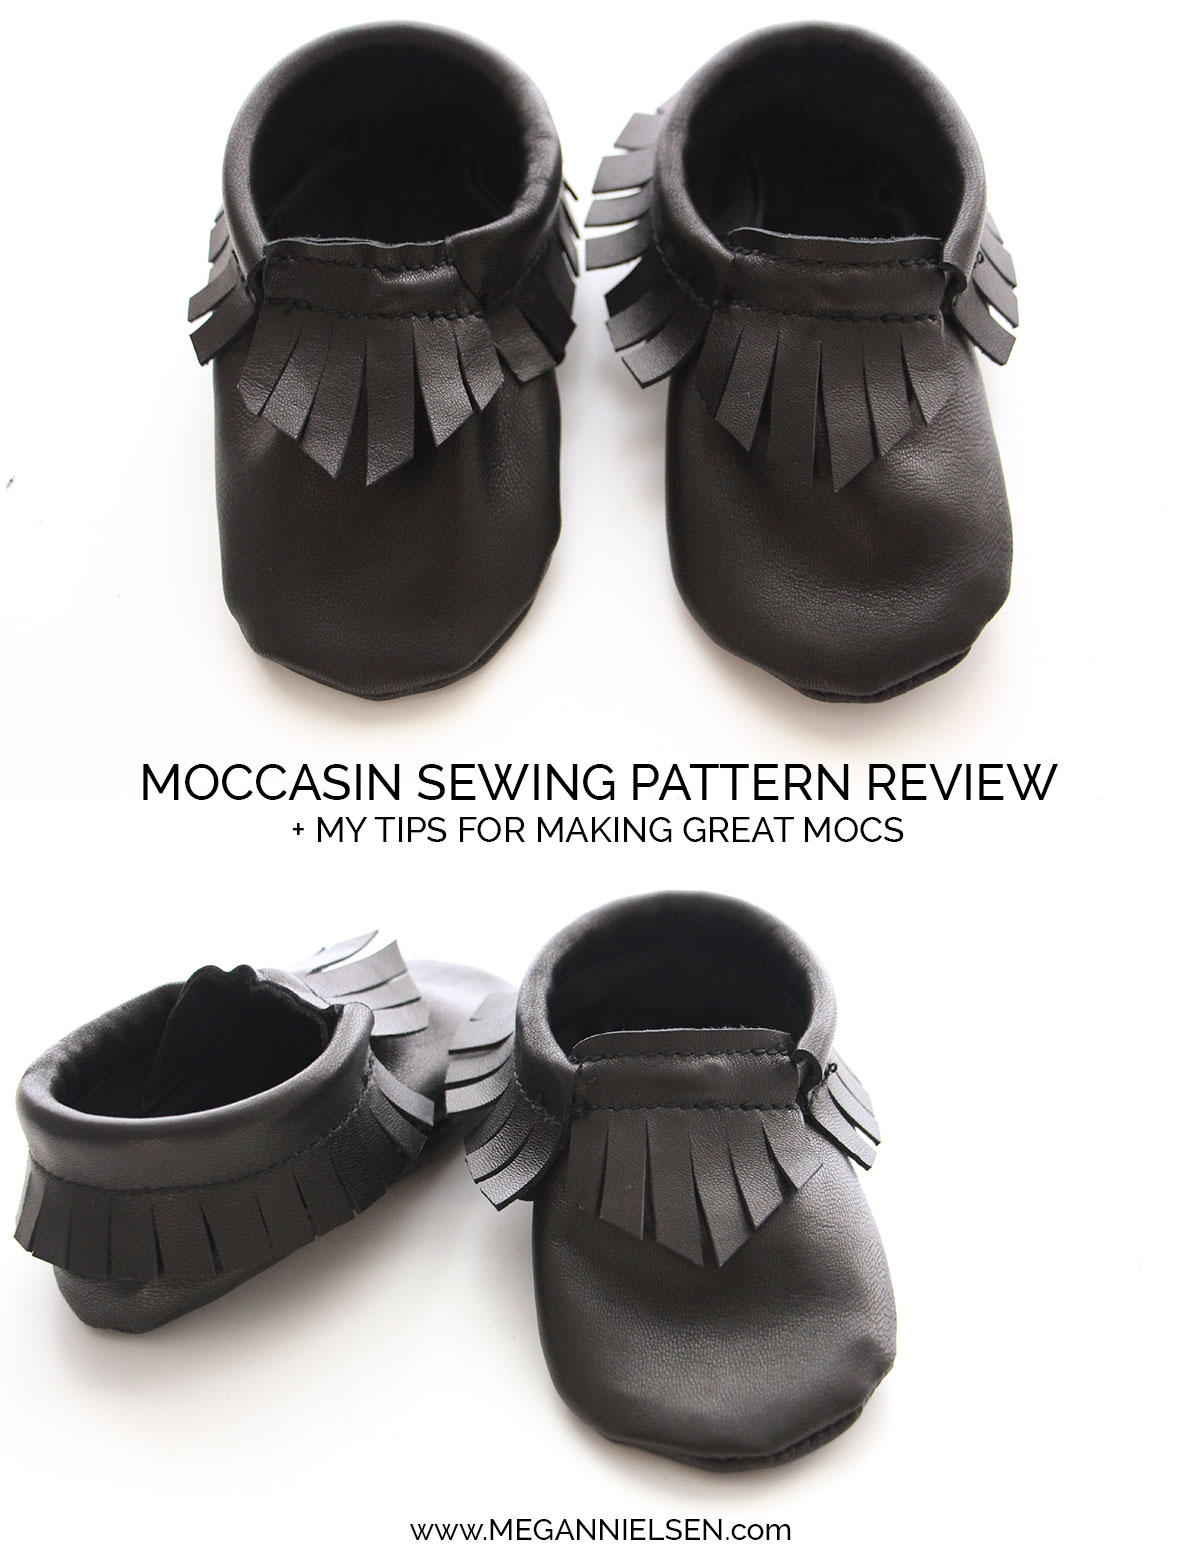 Baby moccasin pattern review + my tips — megan nielsen design diary